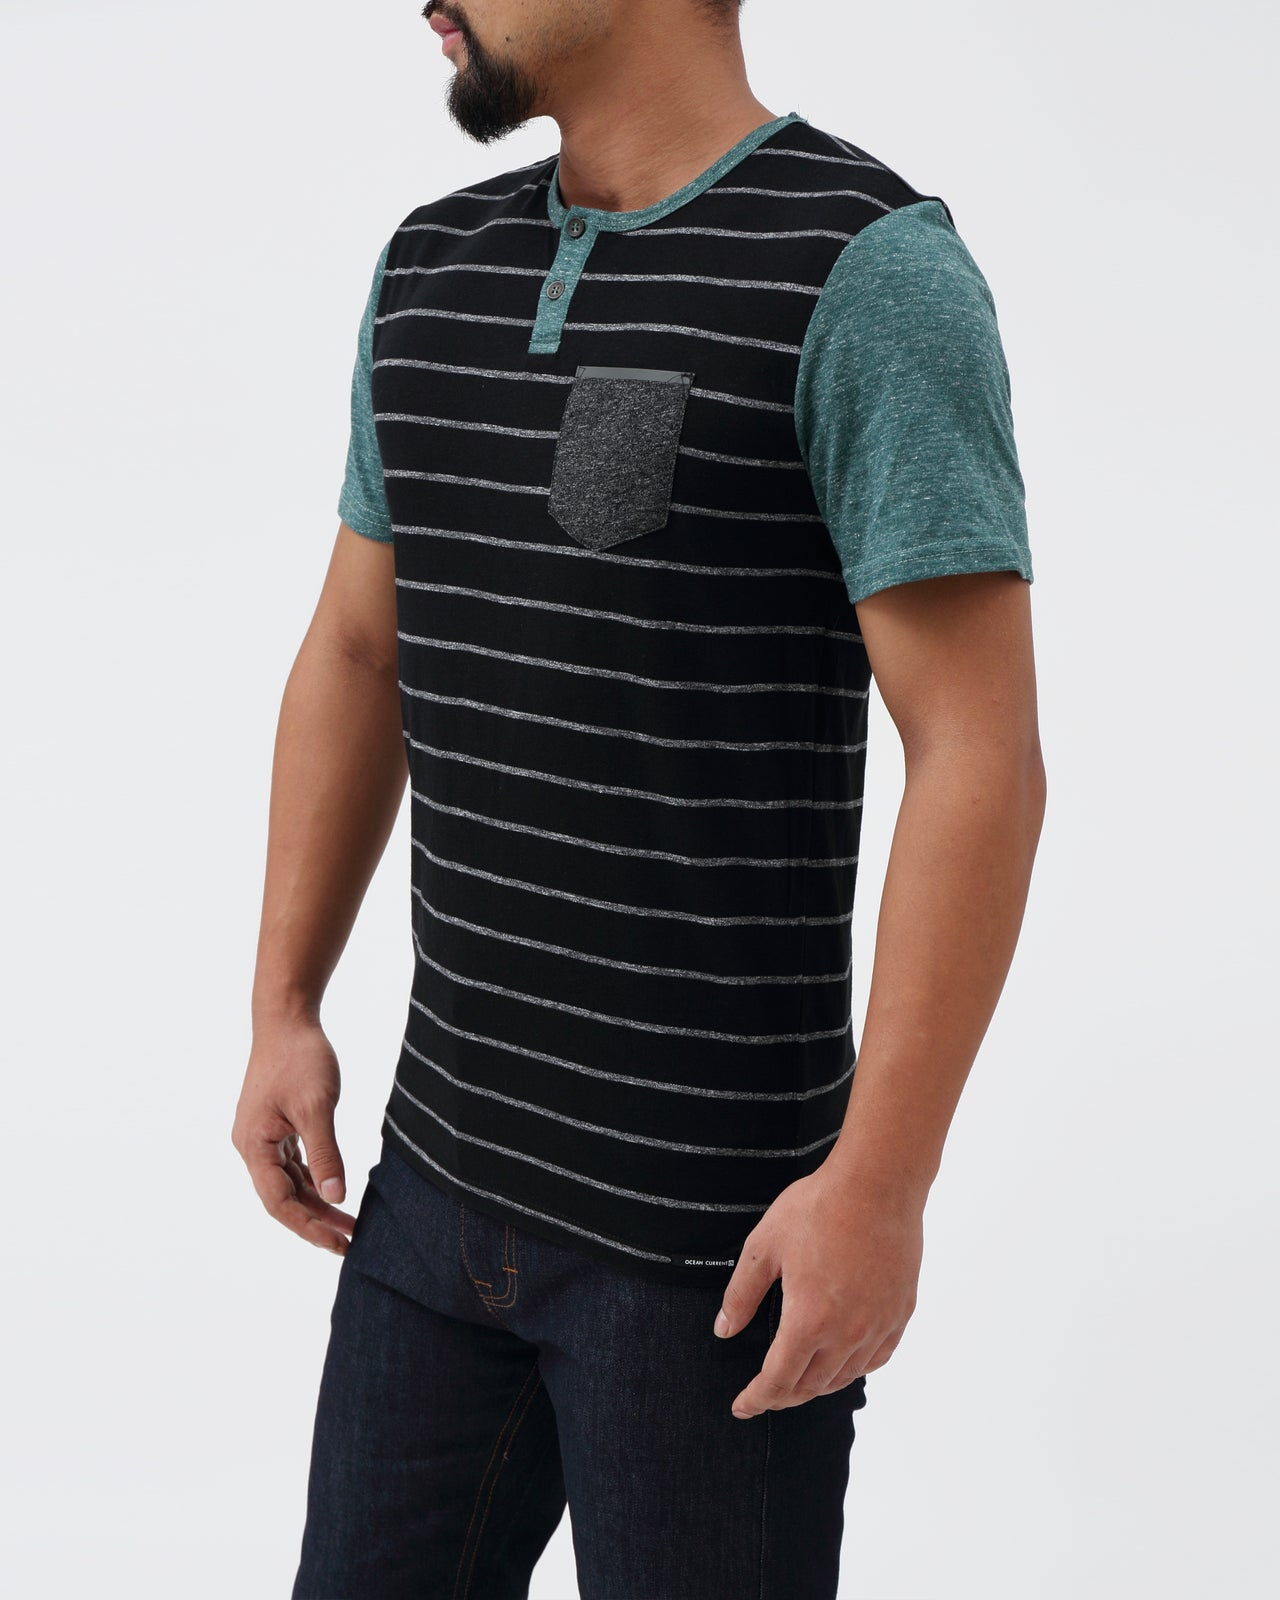 Bermuda Henley Tee - Color: Kale | Green